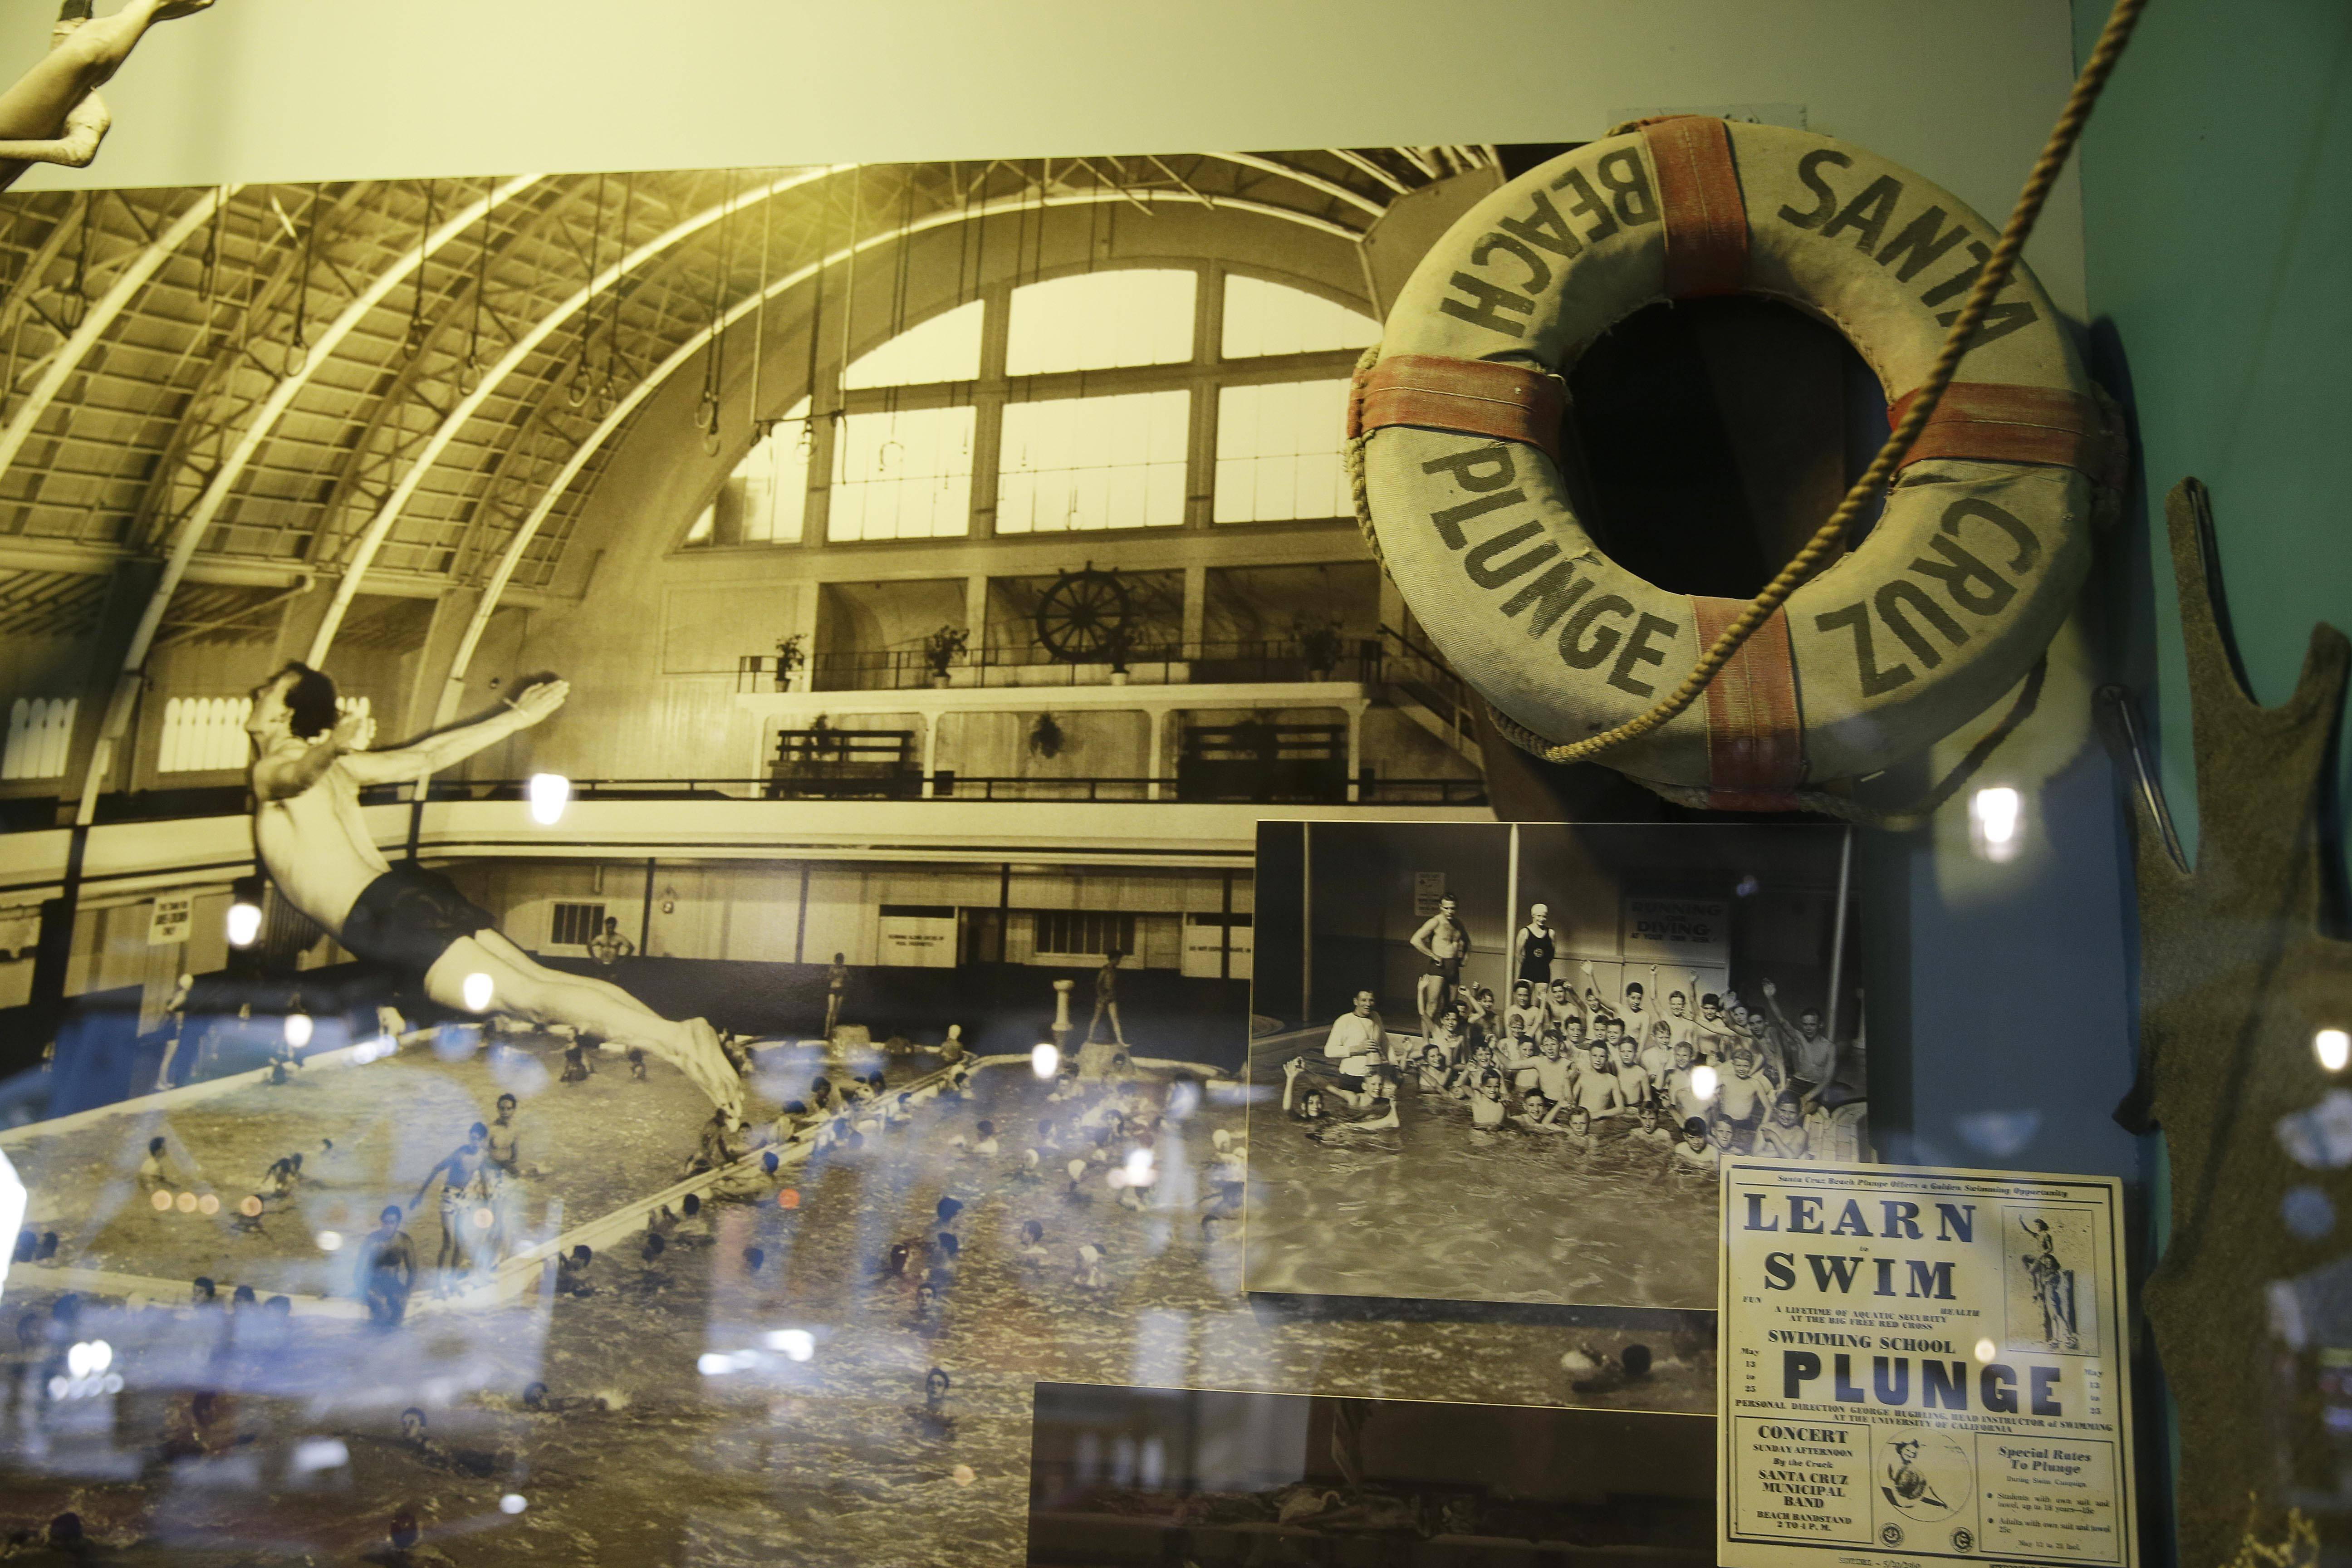 A historic display inside the Neptune's Kingdom amusement center shows items from when the building housed a natatorium on the Santa Cruz Beach Boardwalk in Santa Cruz, Calif. The natatorium was one of the largest indoor, heated, salt water pools on the west coast and was called The Plunge. Each summer thousands would be attracted to the water carnival in the pool.